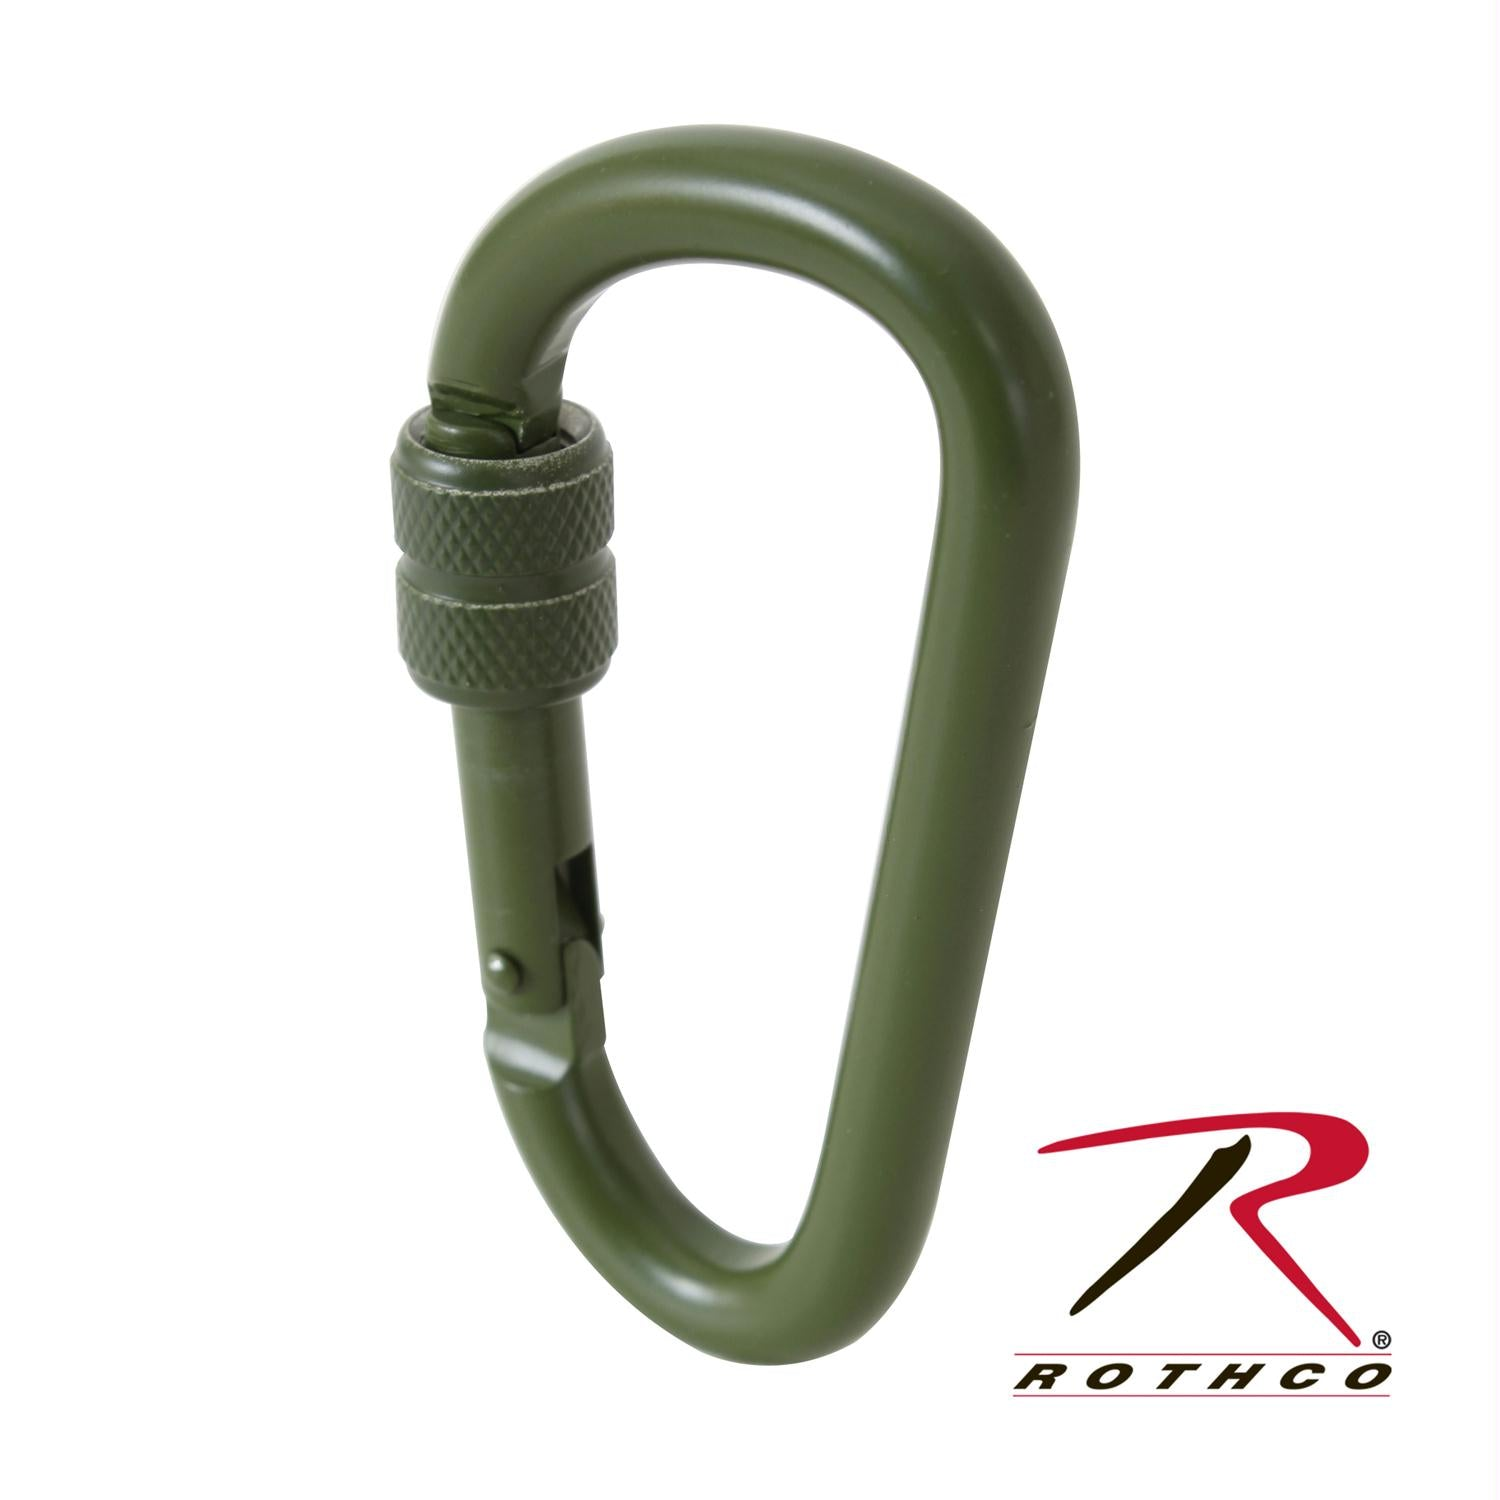 Rothco 80MM Locking Carabiner - Olive Drab